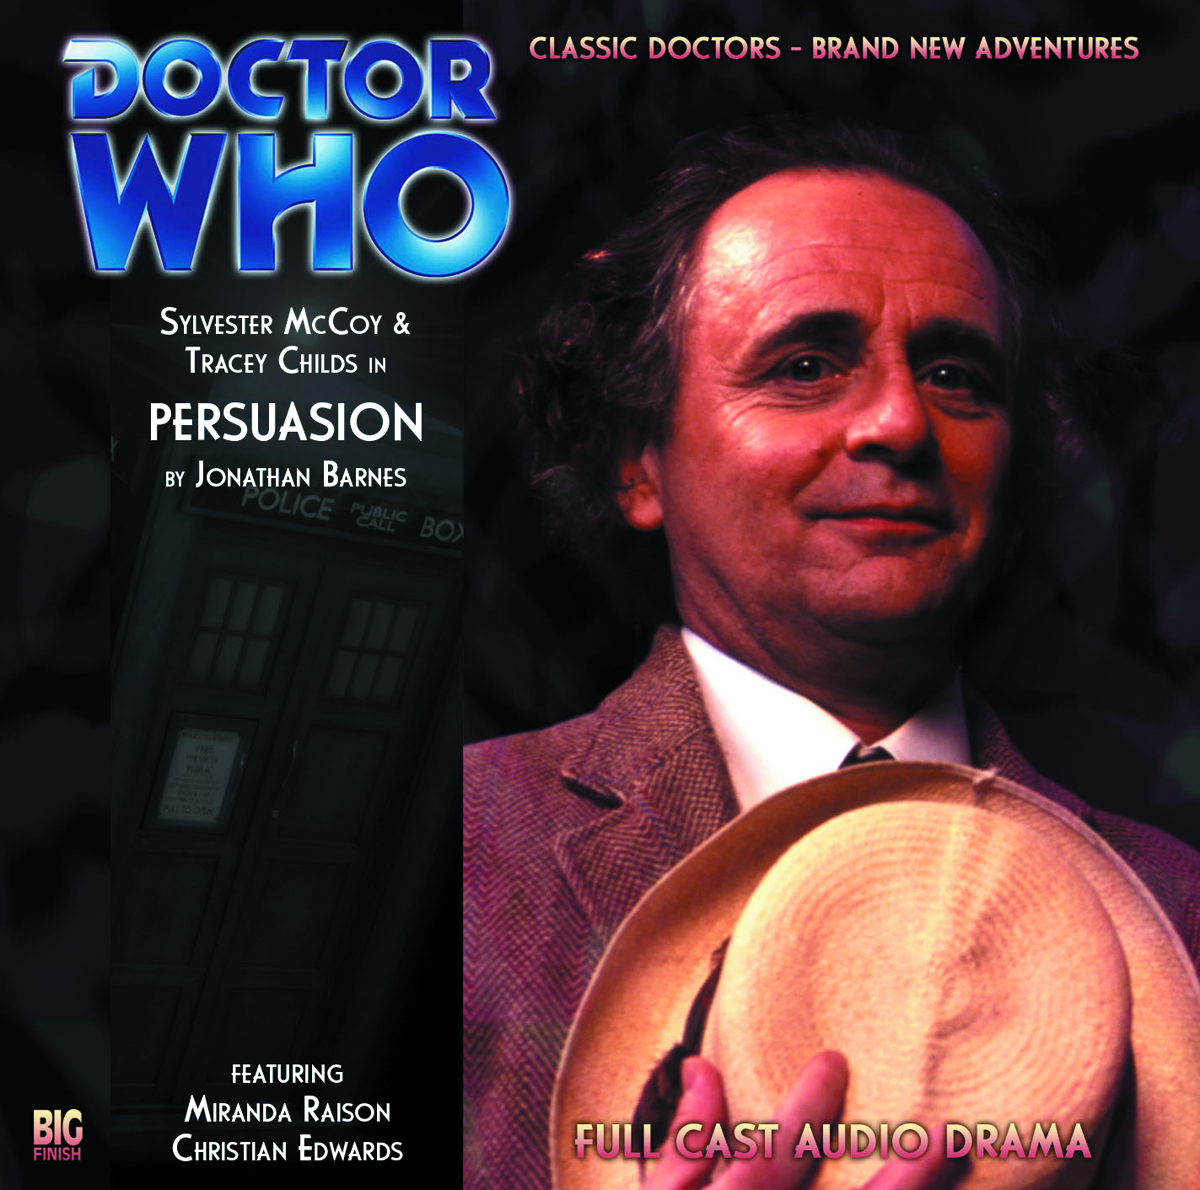 DOCTOR WHO PERSUASION AUDIO CD